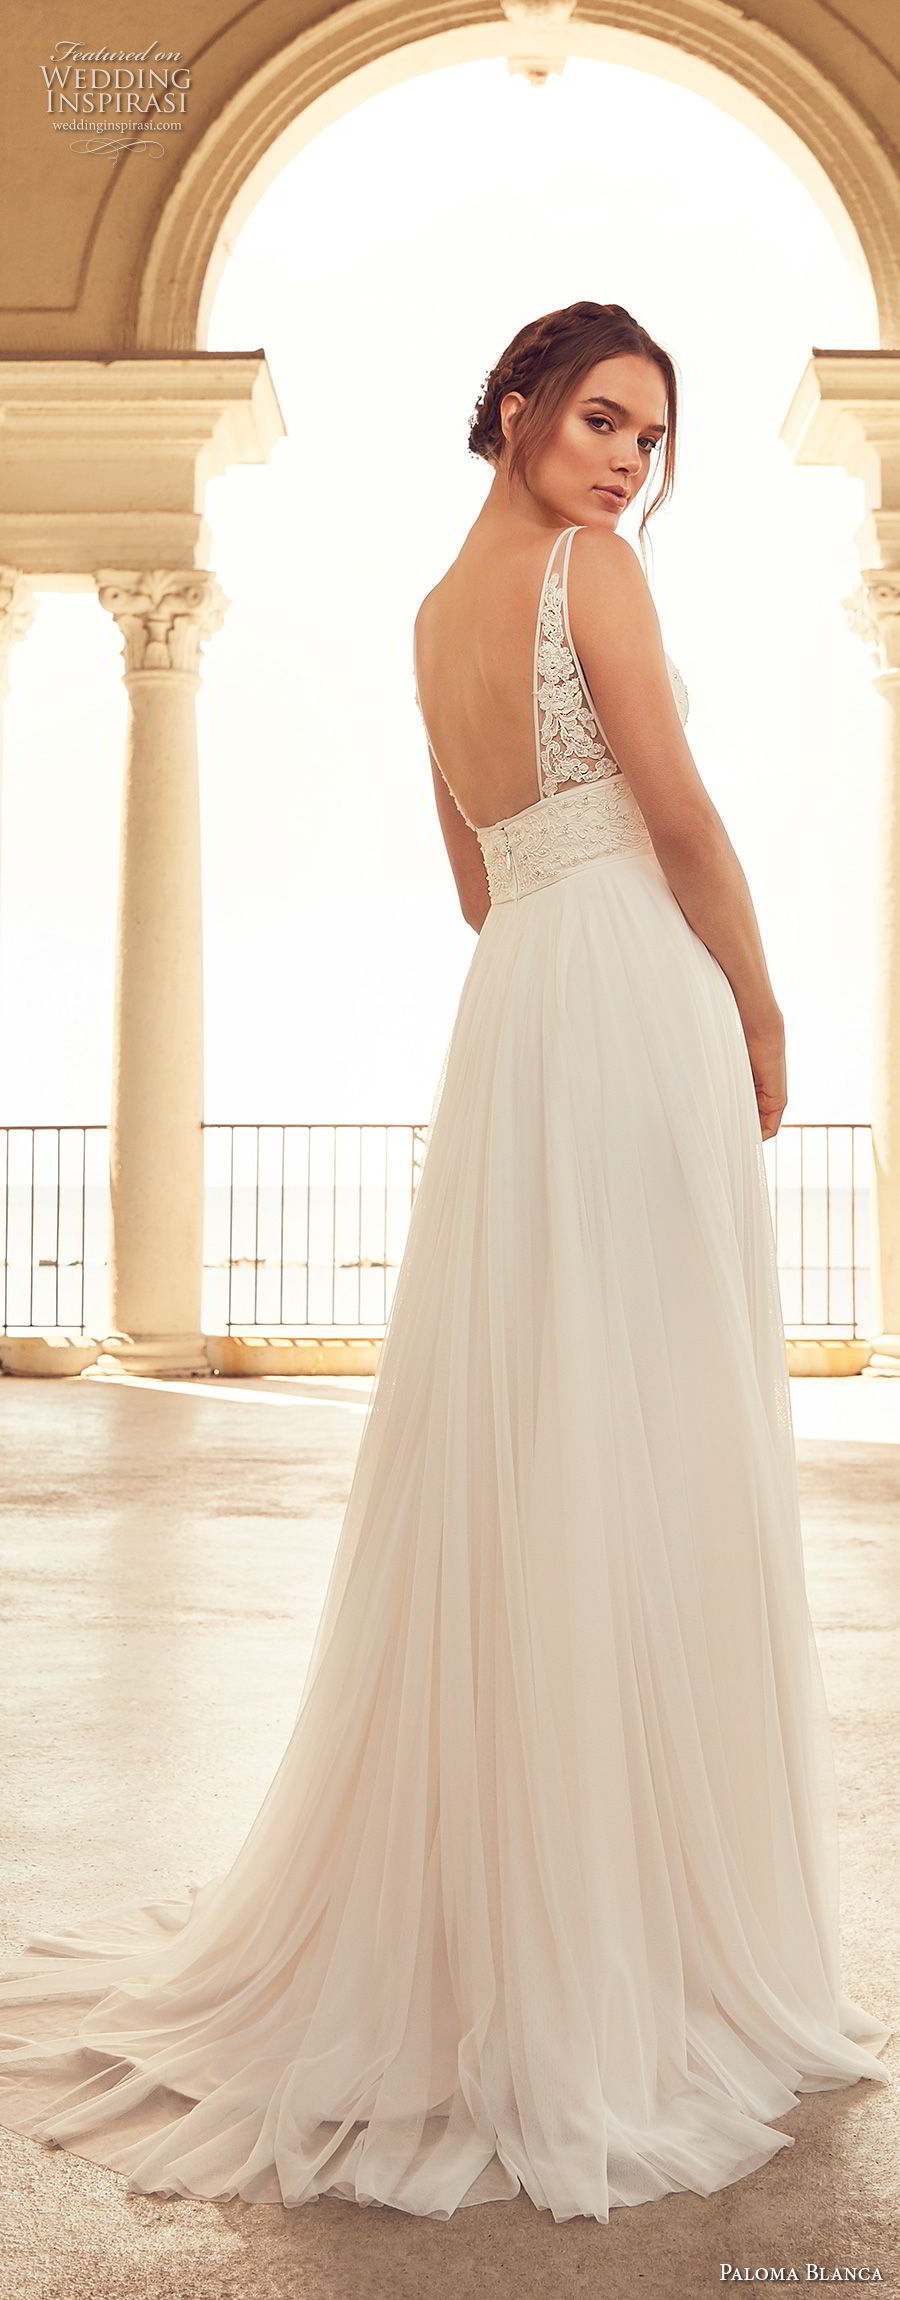 paloma blanca spring 2018 bridal sleeveless v neck heavily embellished bodice romantic soft a  line wedding dress open back sweep train (2) bv